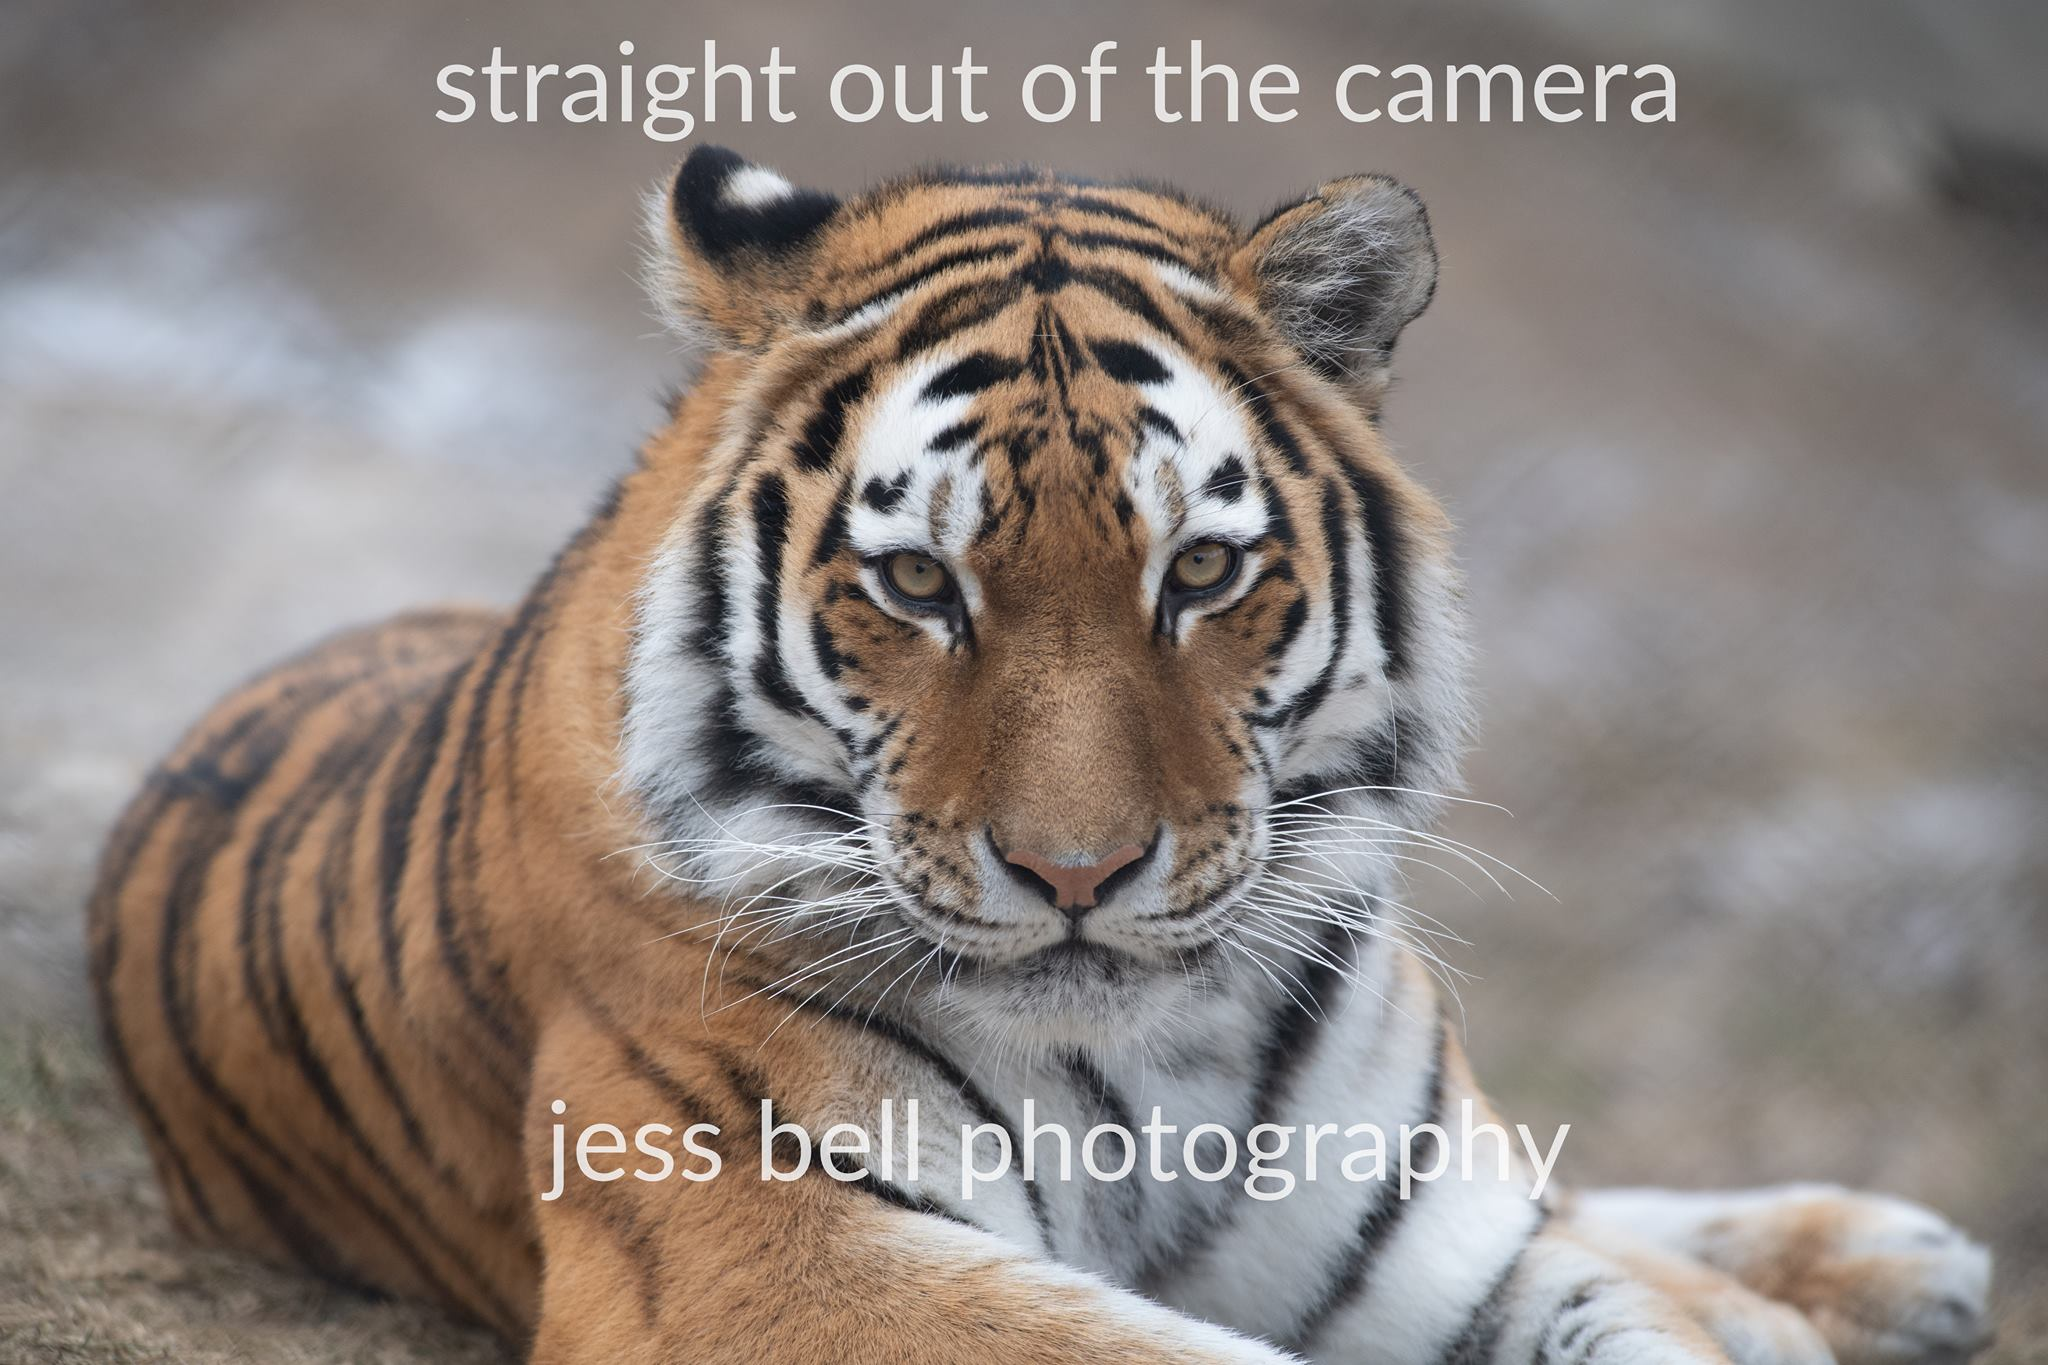 Artistic Animal Photography - Jess Bell Photography - Toronto, Ontario